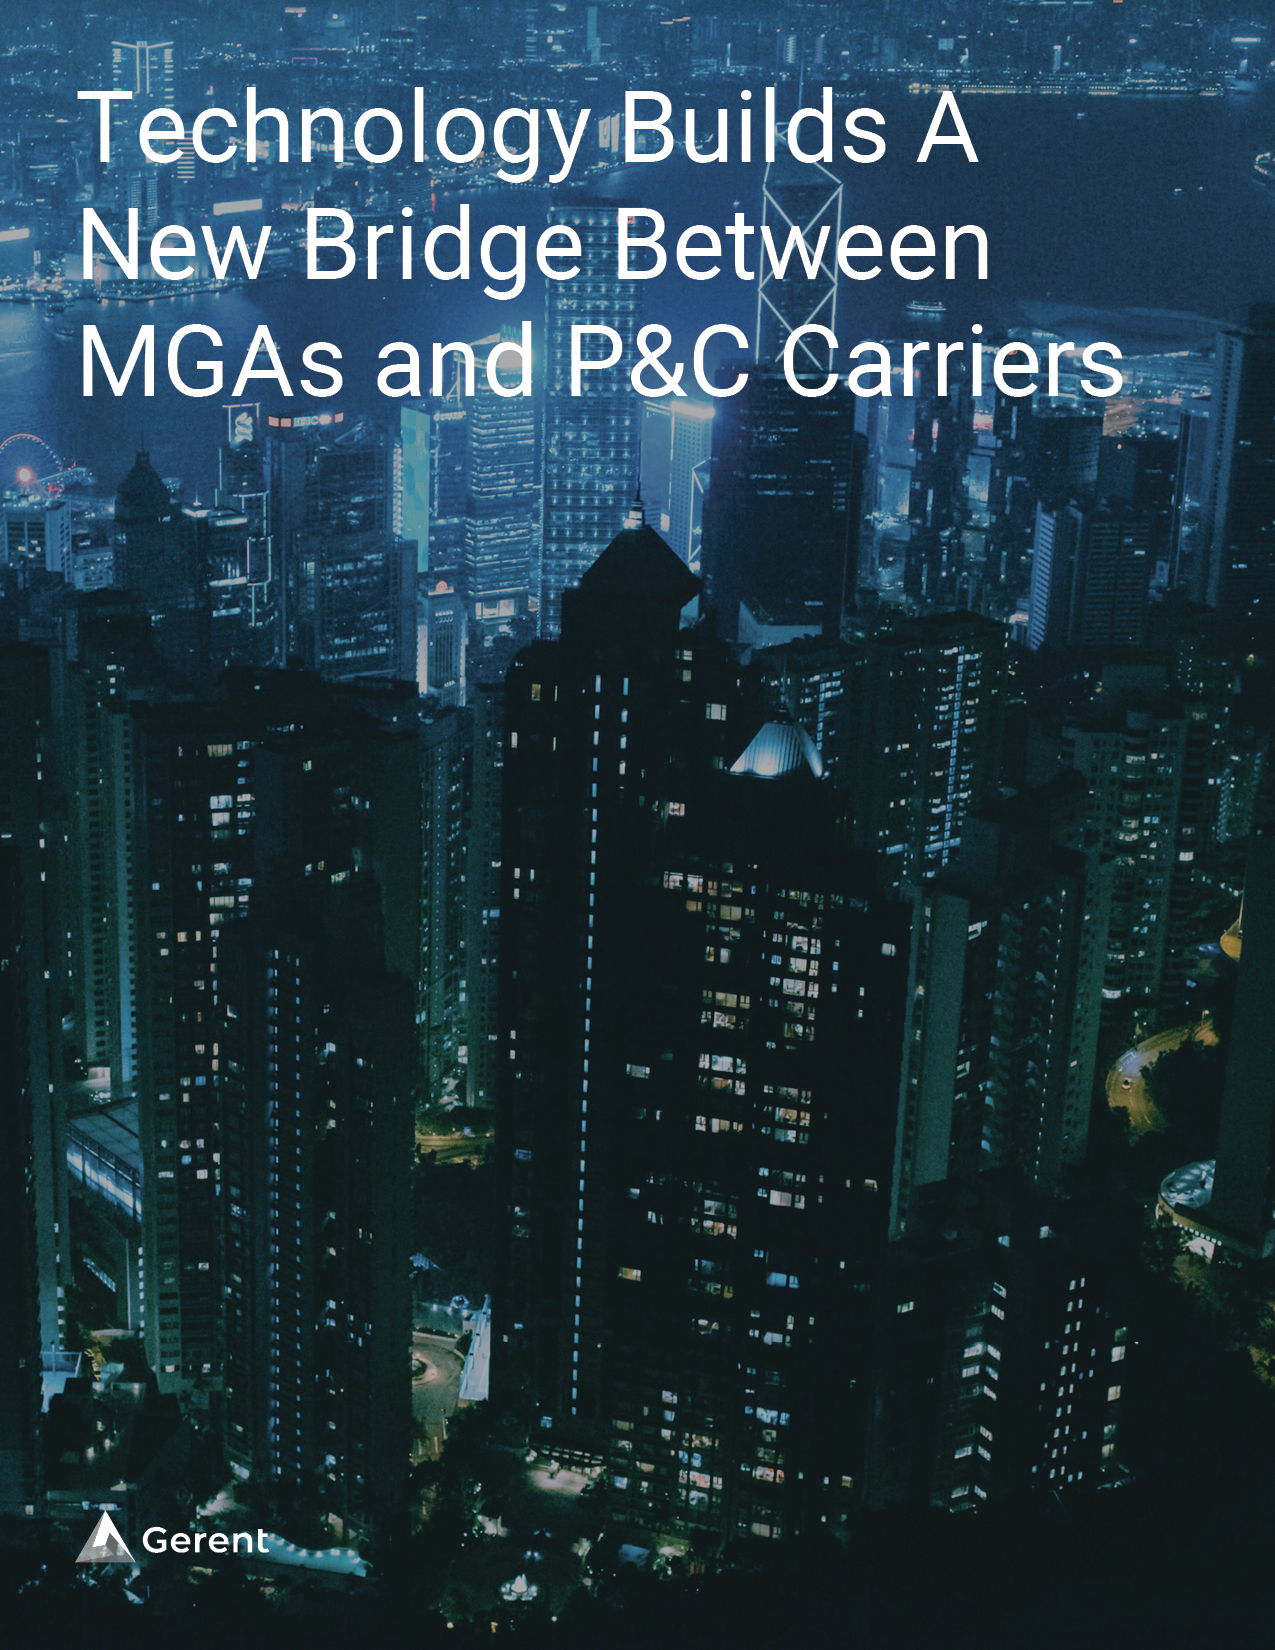 Technology Builds A New Bridge Between MGAs and P&C Carriers